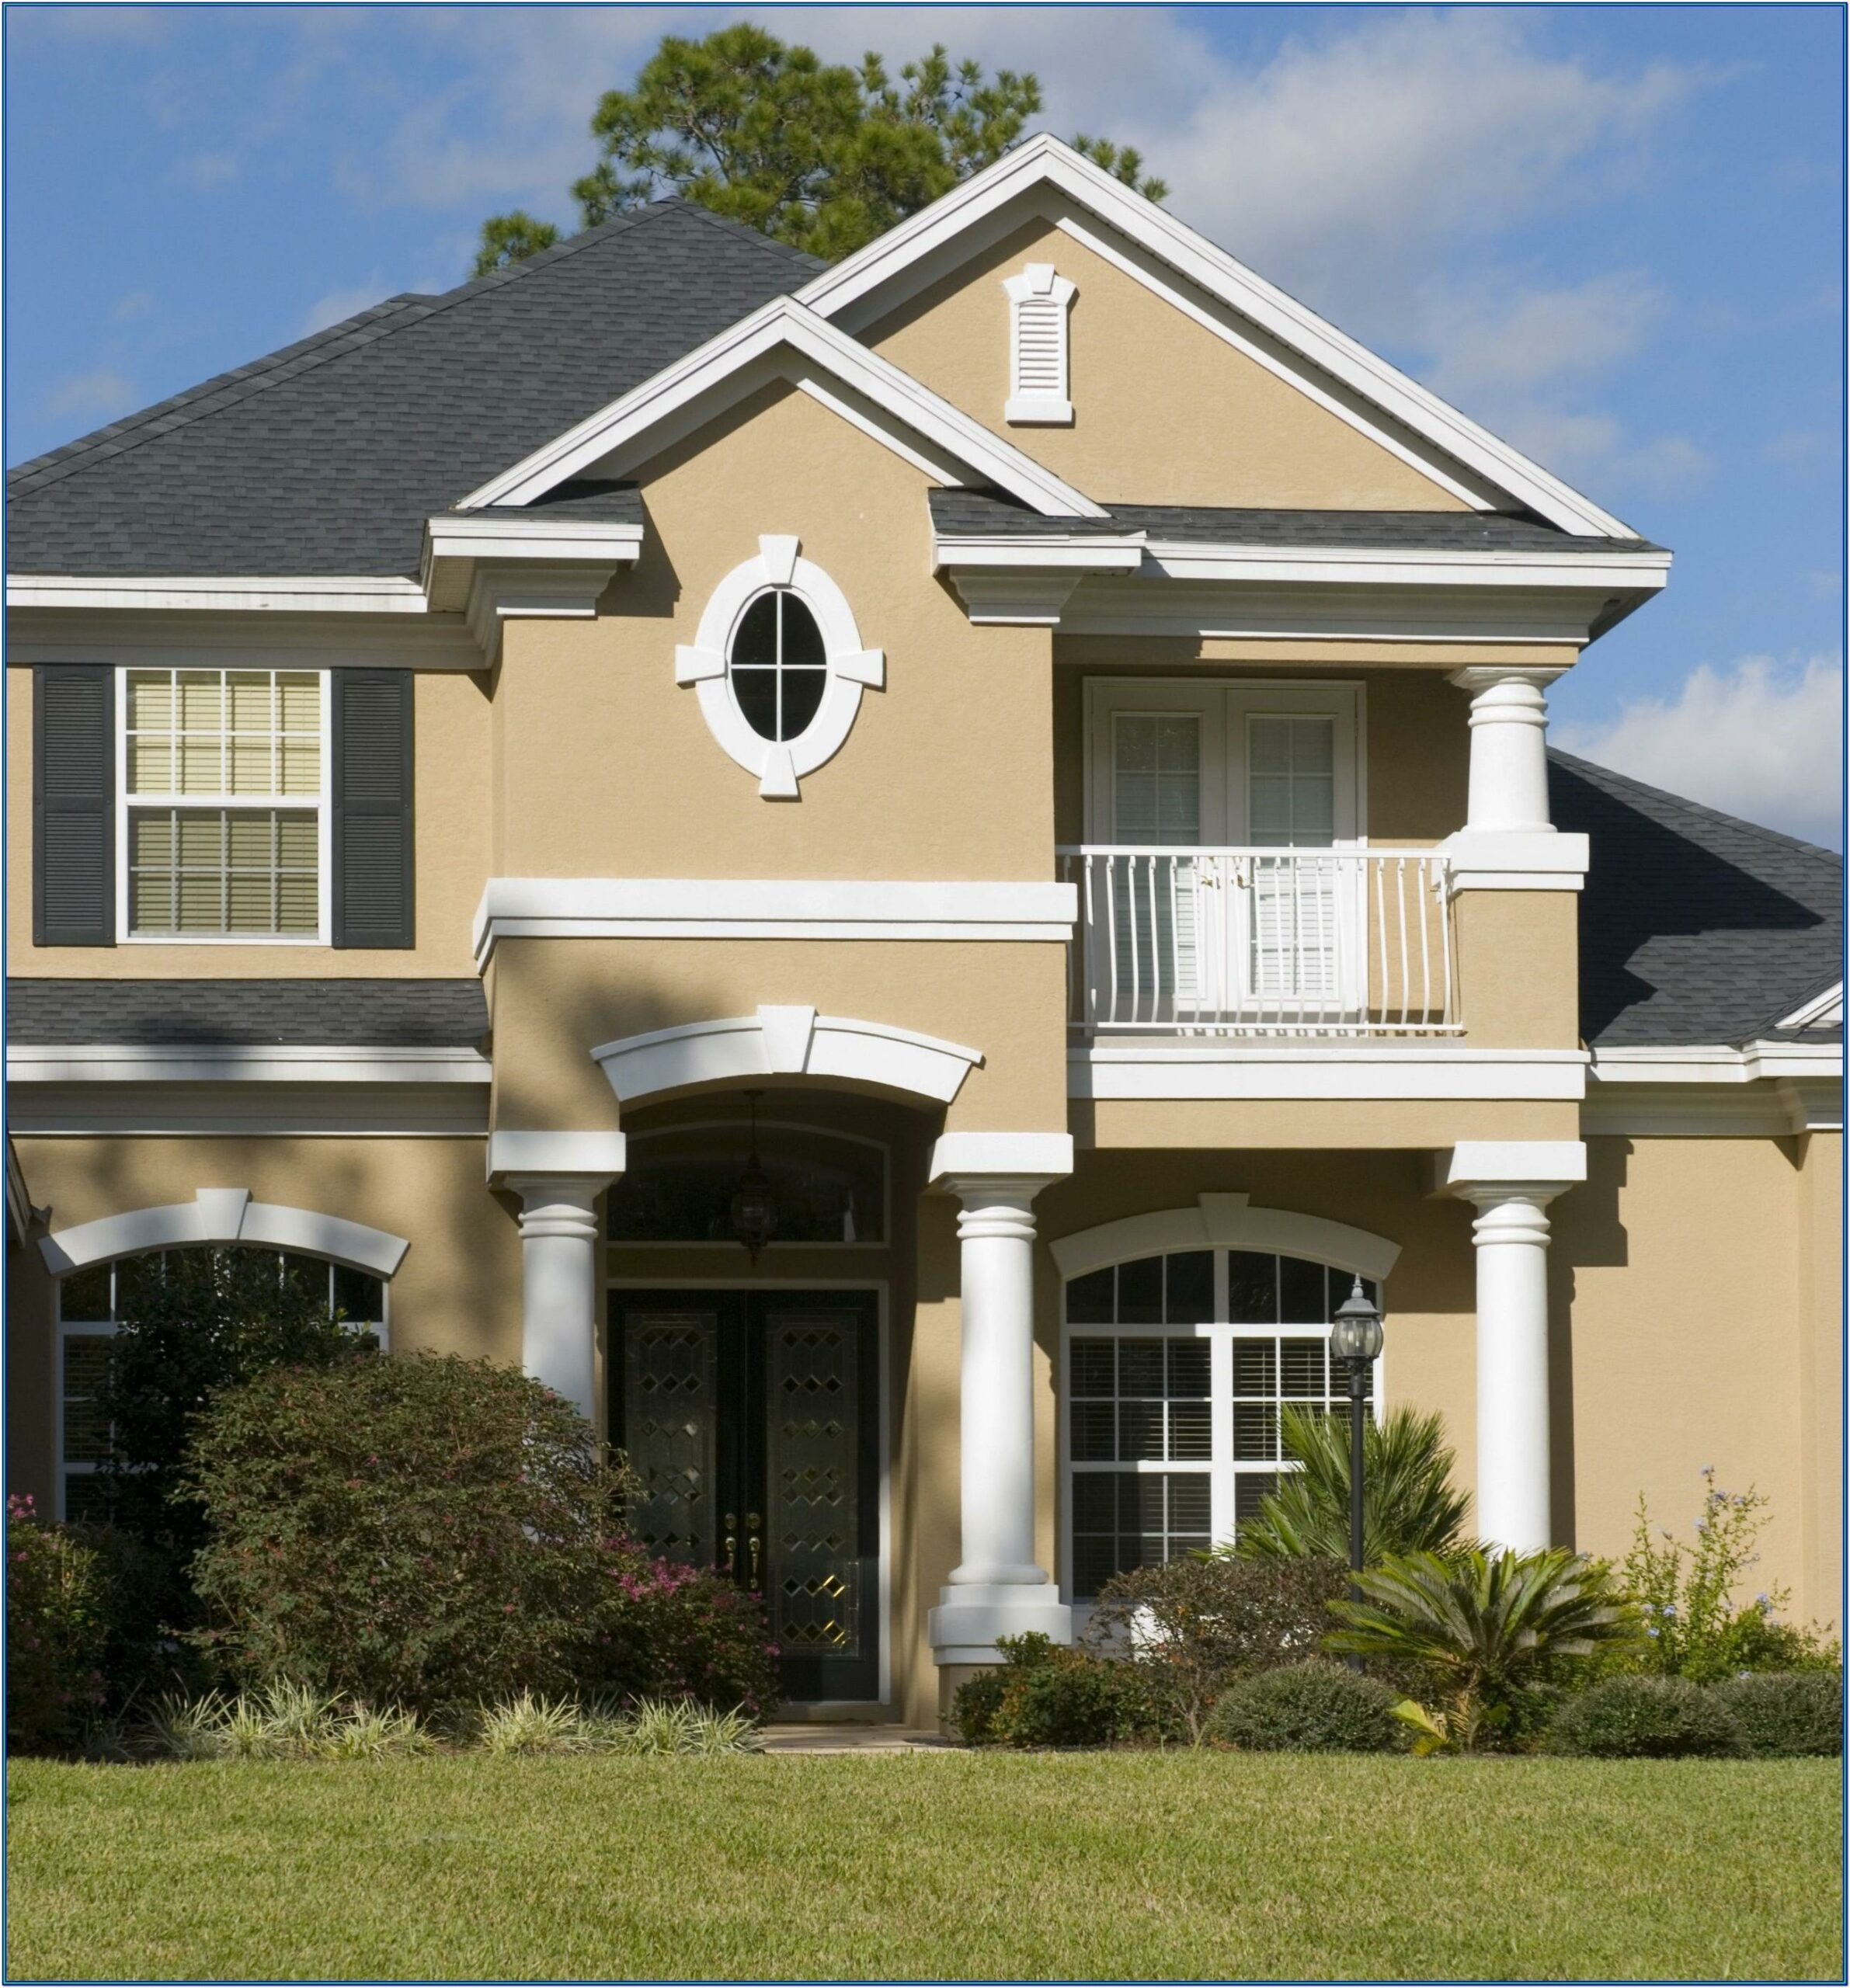 House Painting Ideas Outside